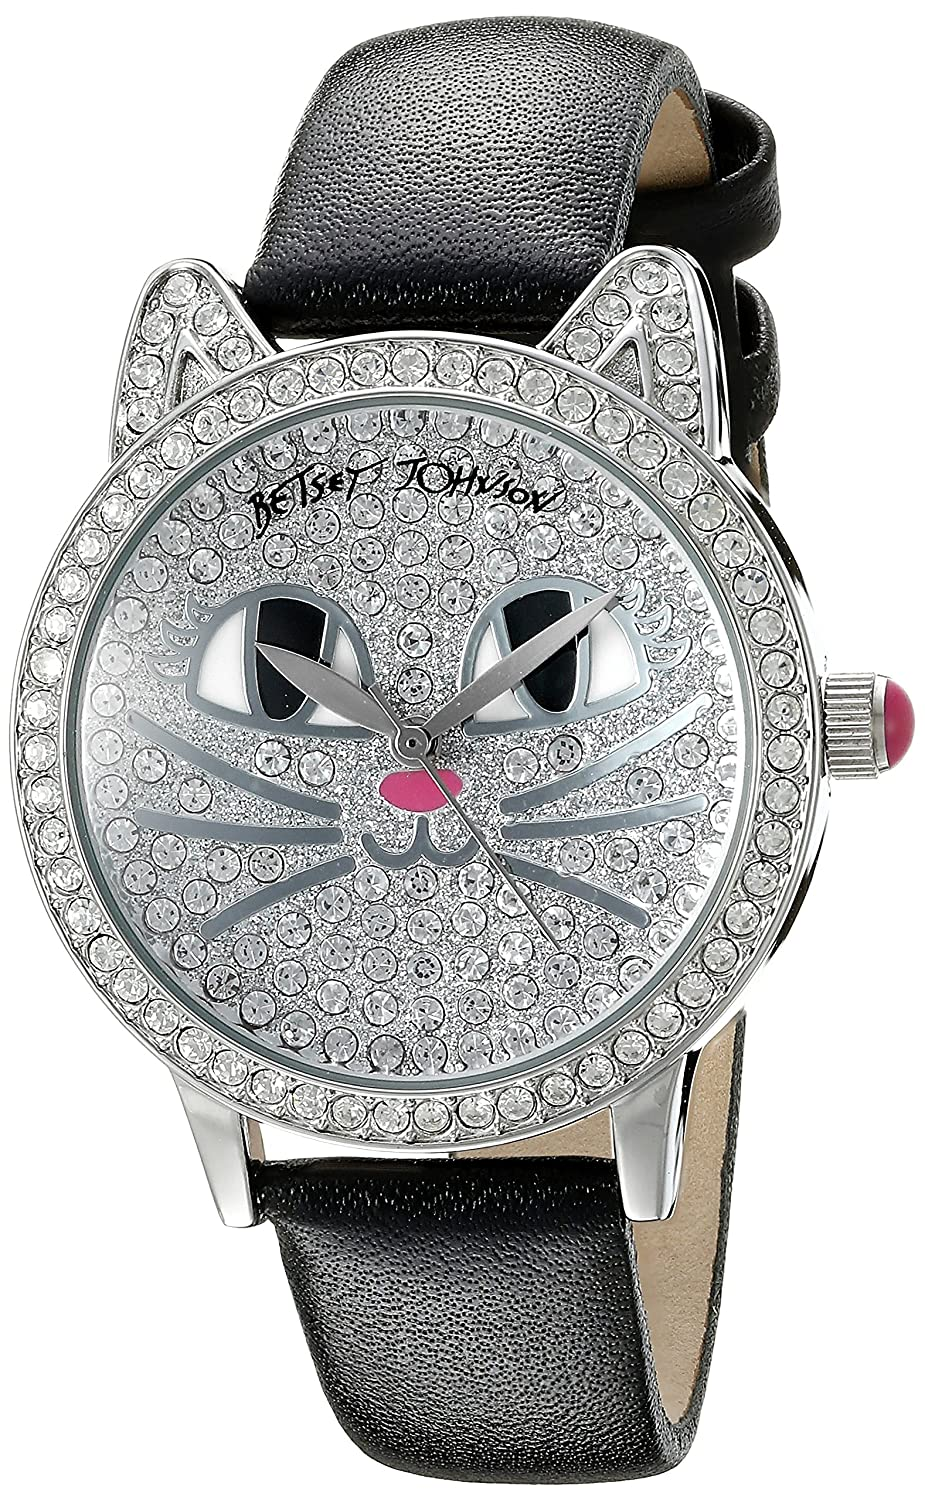 Betsey Johnson Women's BJ00561-05 Analog Display Quartz Black Watch